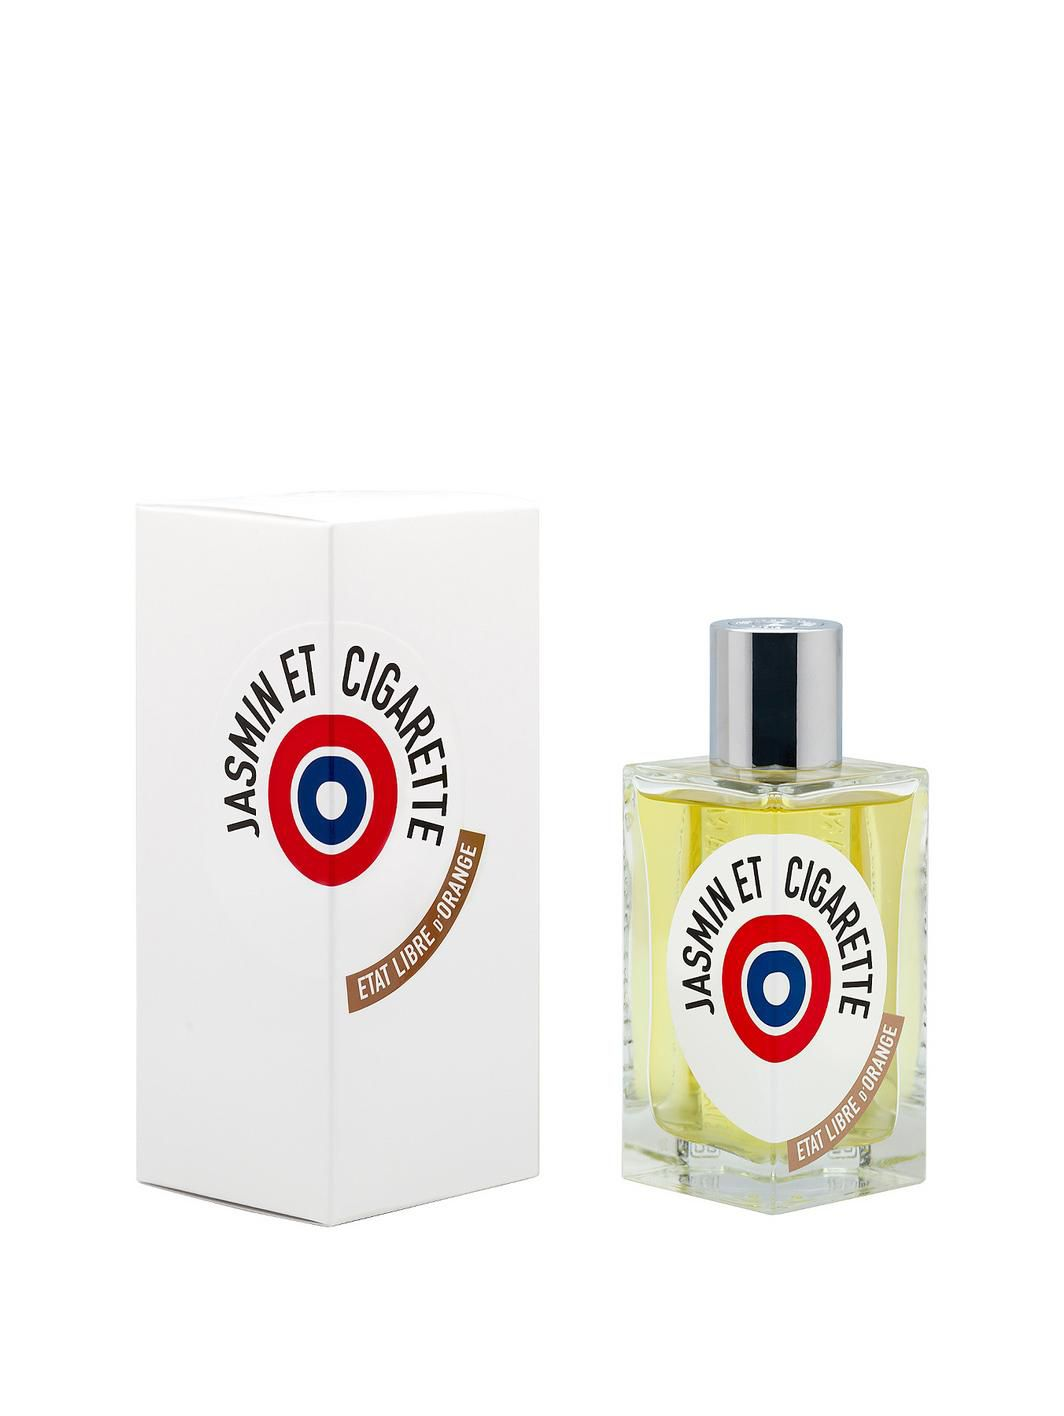 Etat Libre d'Orange Etat Libre d'Orange Jasmin et Cigarette Eau de Parfum 50ml